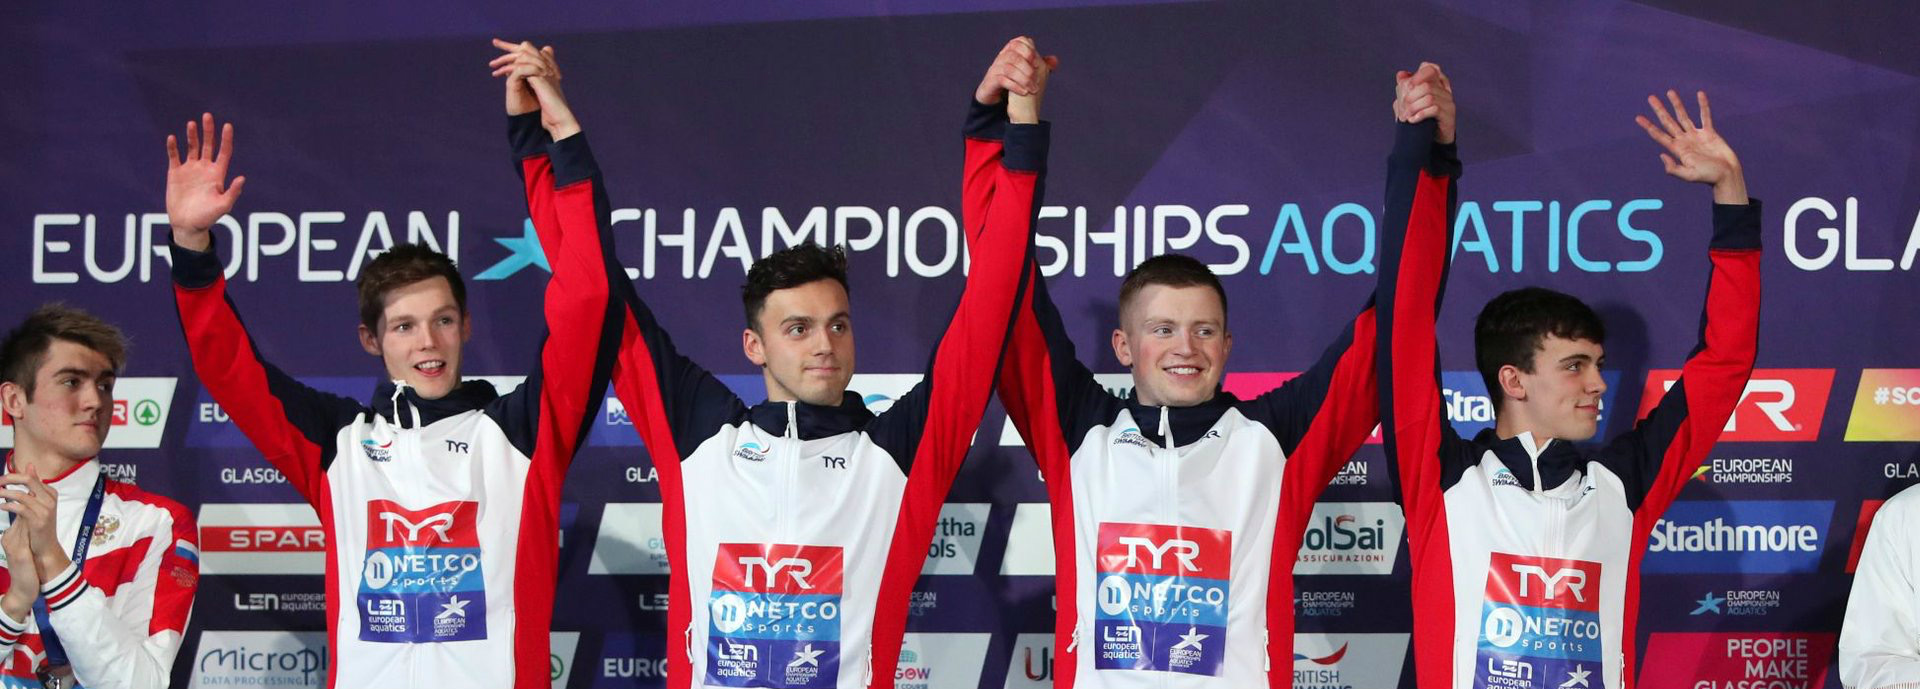 Duncan Scott celebrates with GB teammates on podium